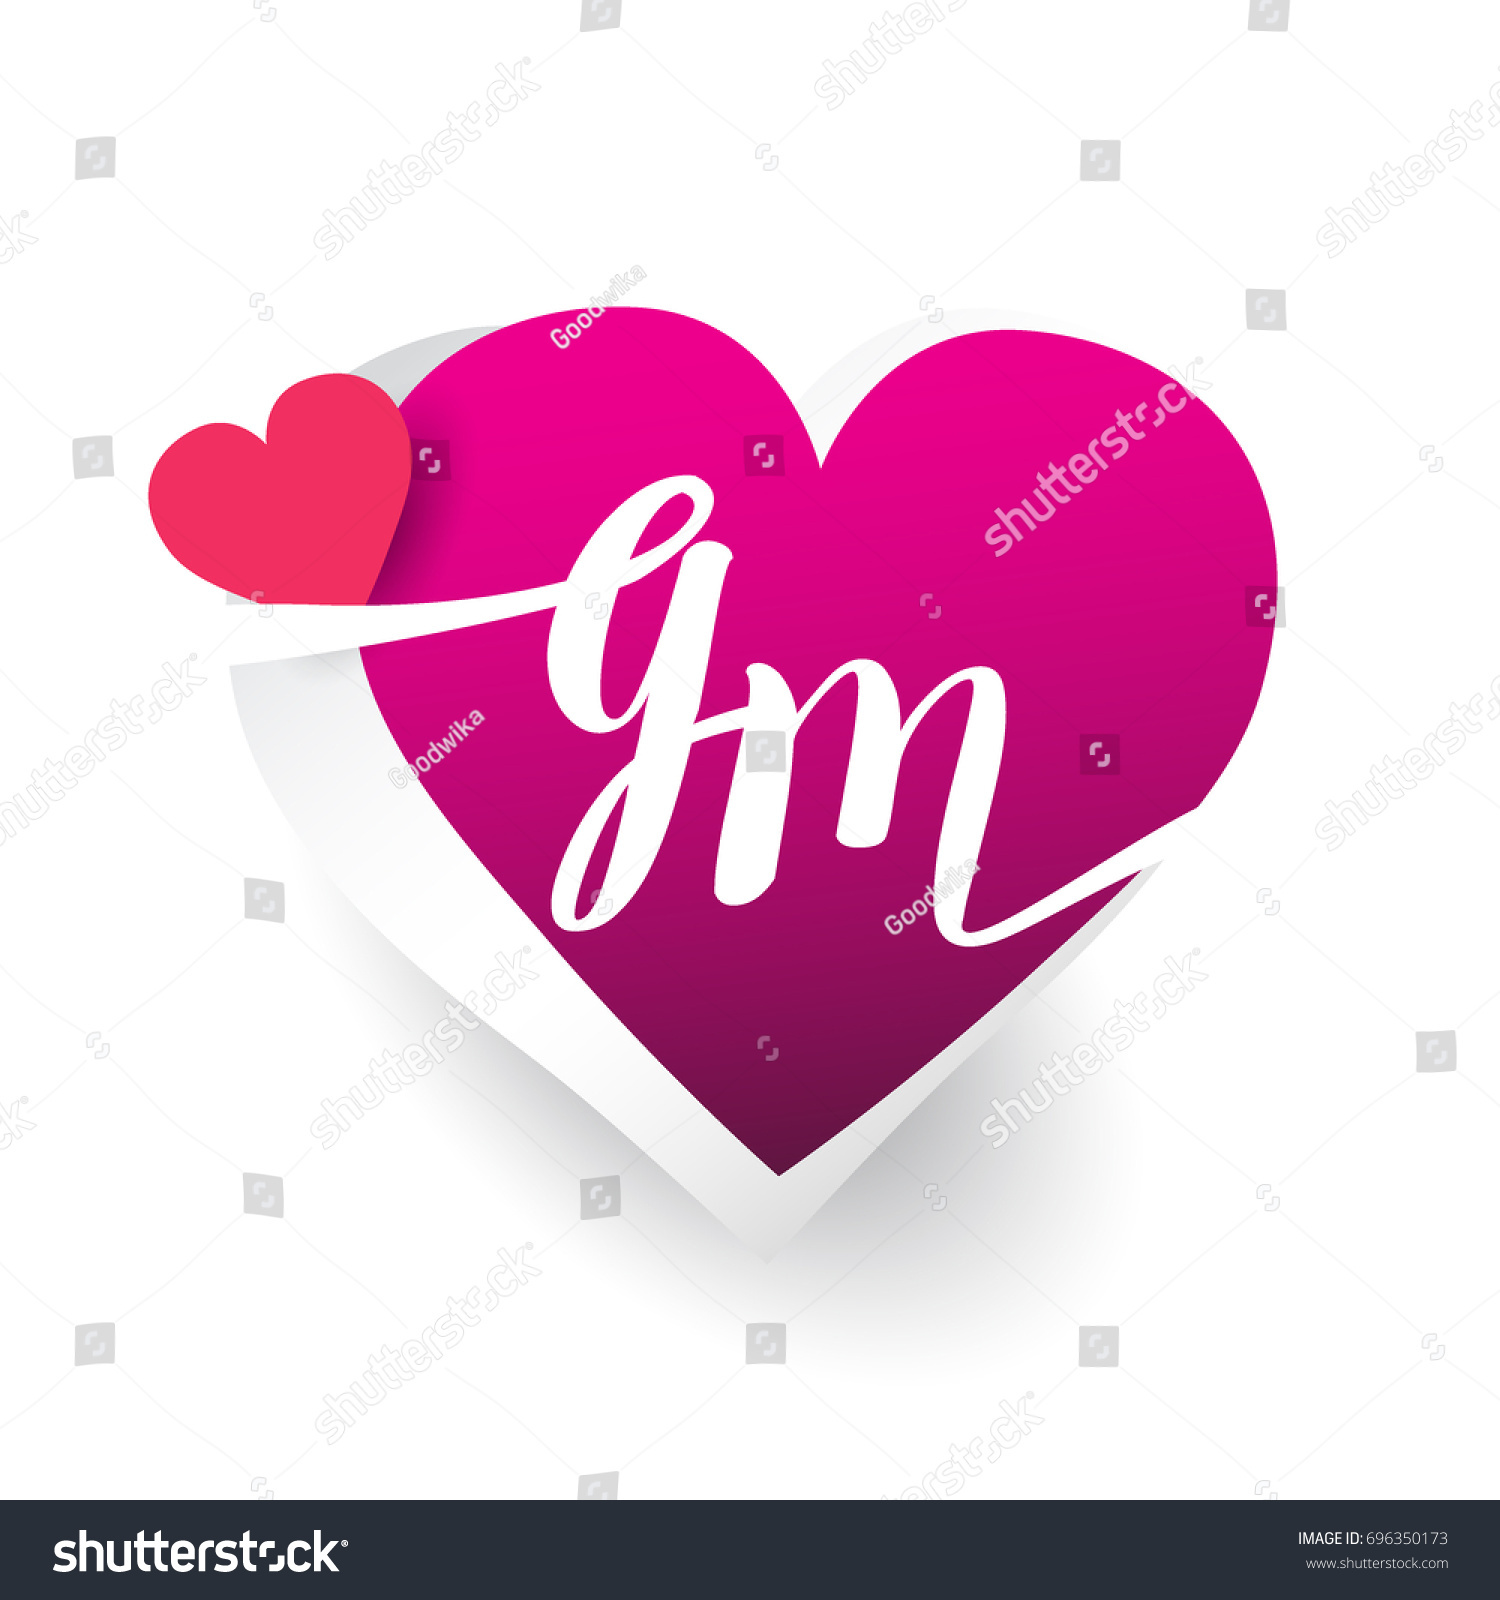 initial logo letter gm heart shape stock vector royalty free